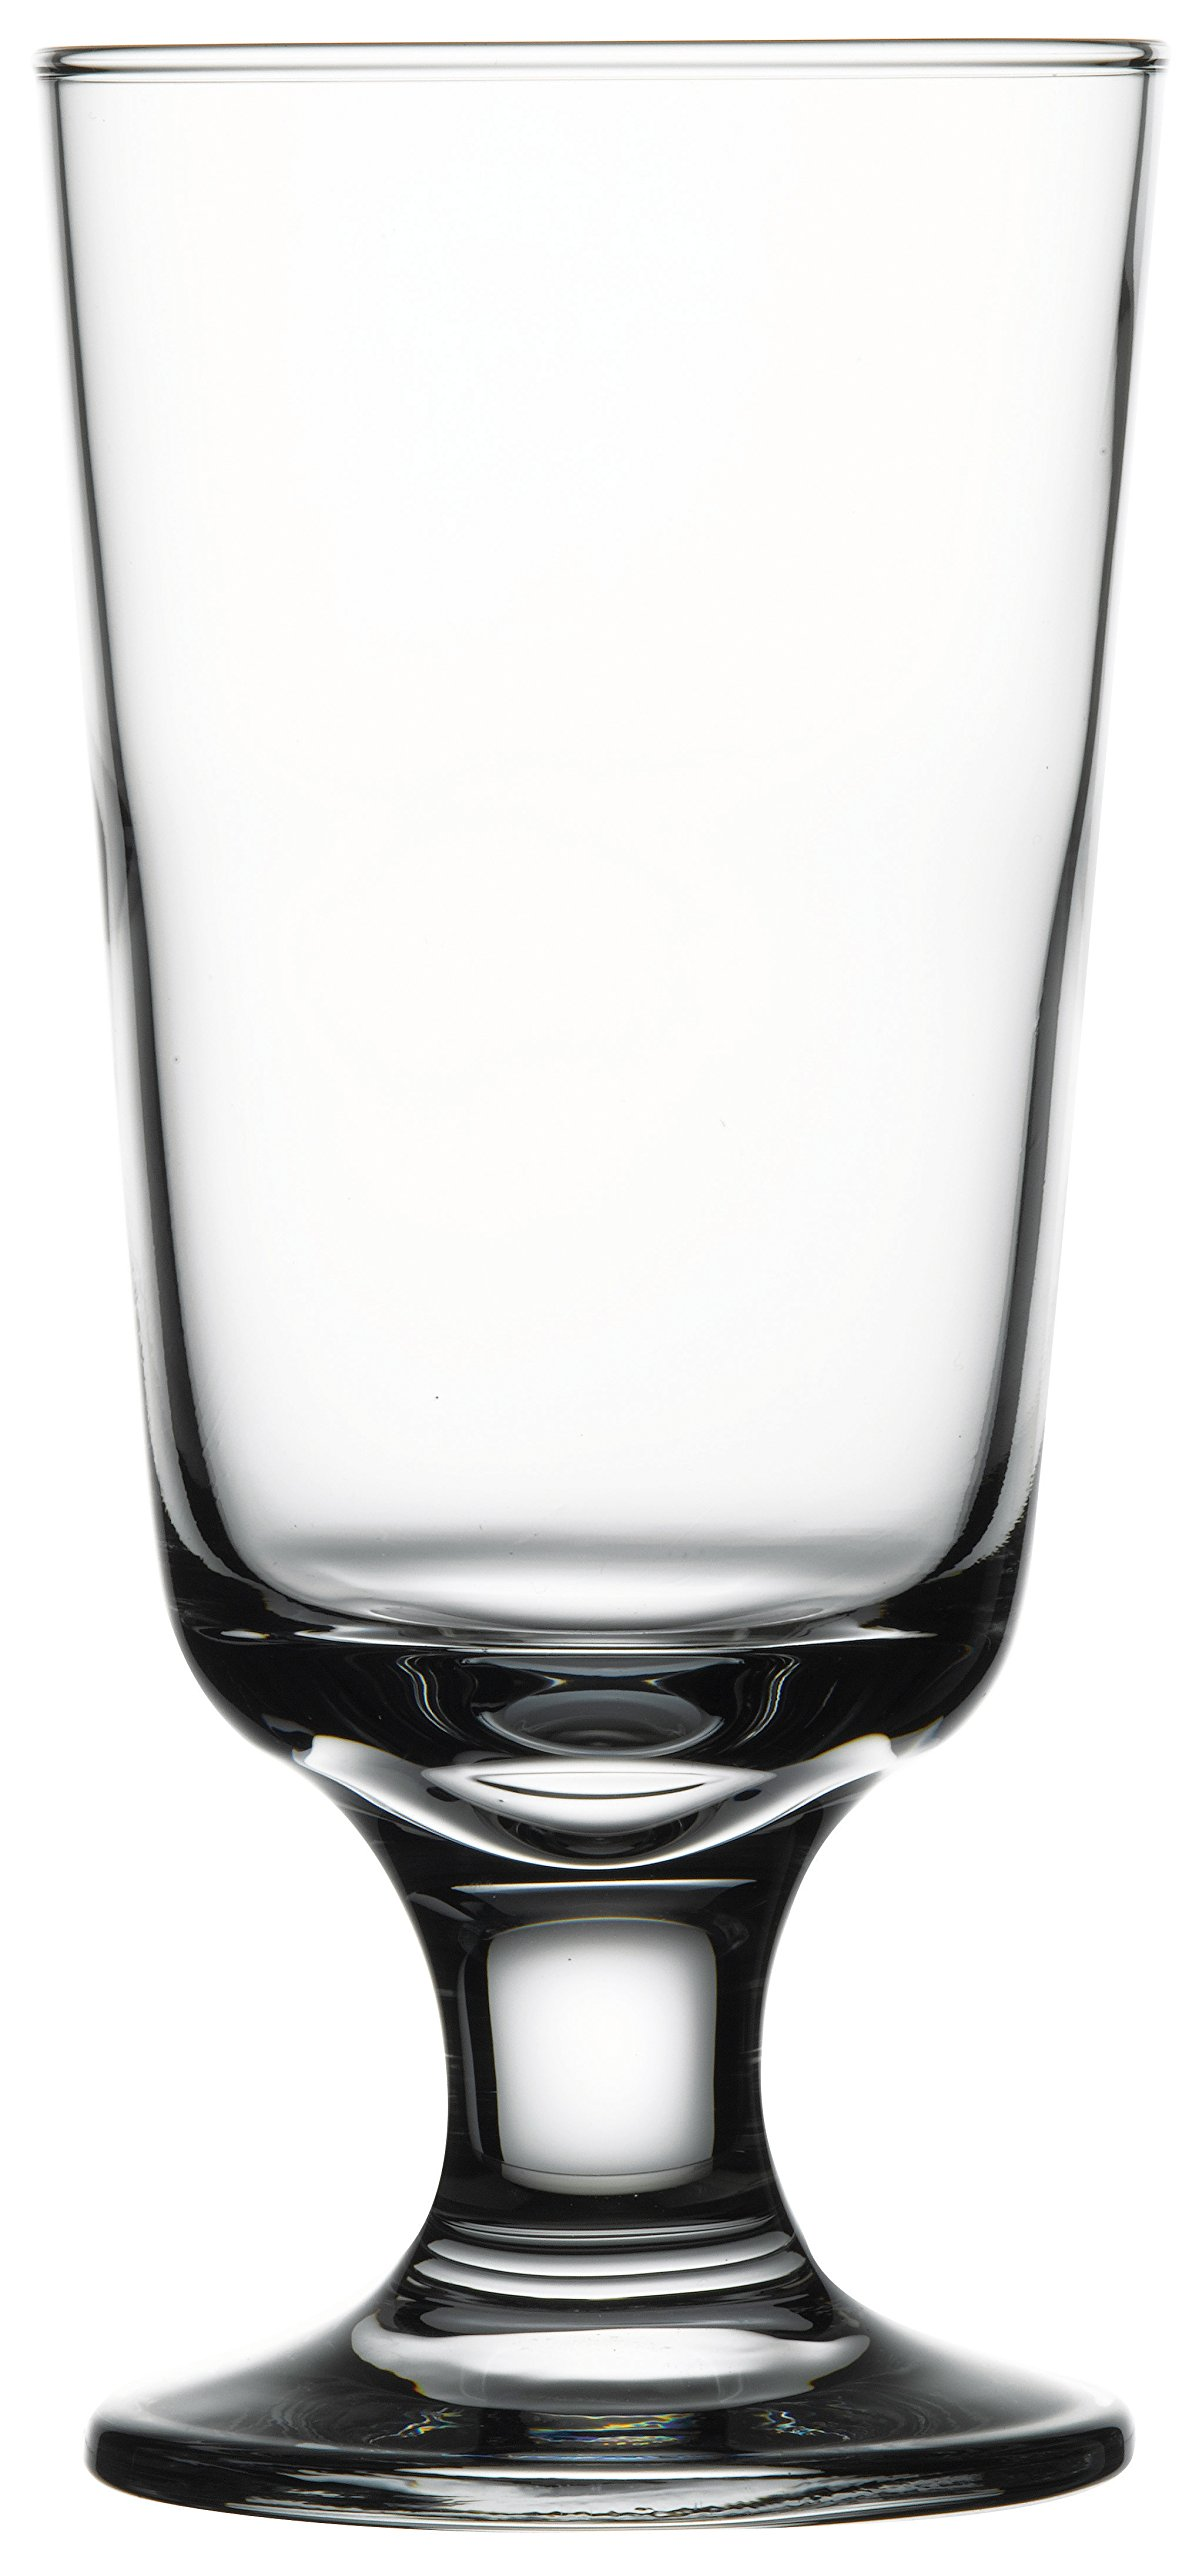 Hospitality Glass Brands 44912-012 Capri 10 oz. Tavern Footed Highball (Pack of 12)